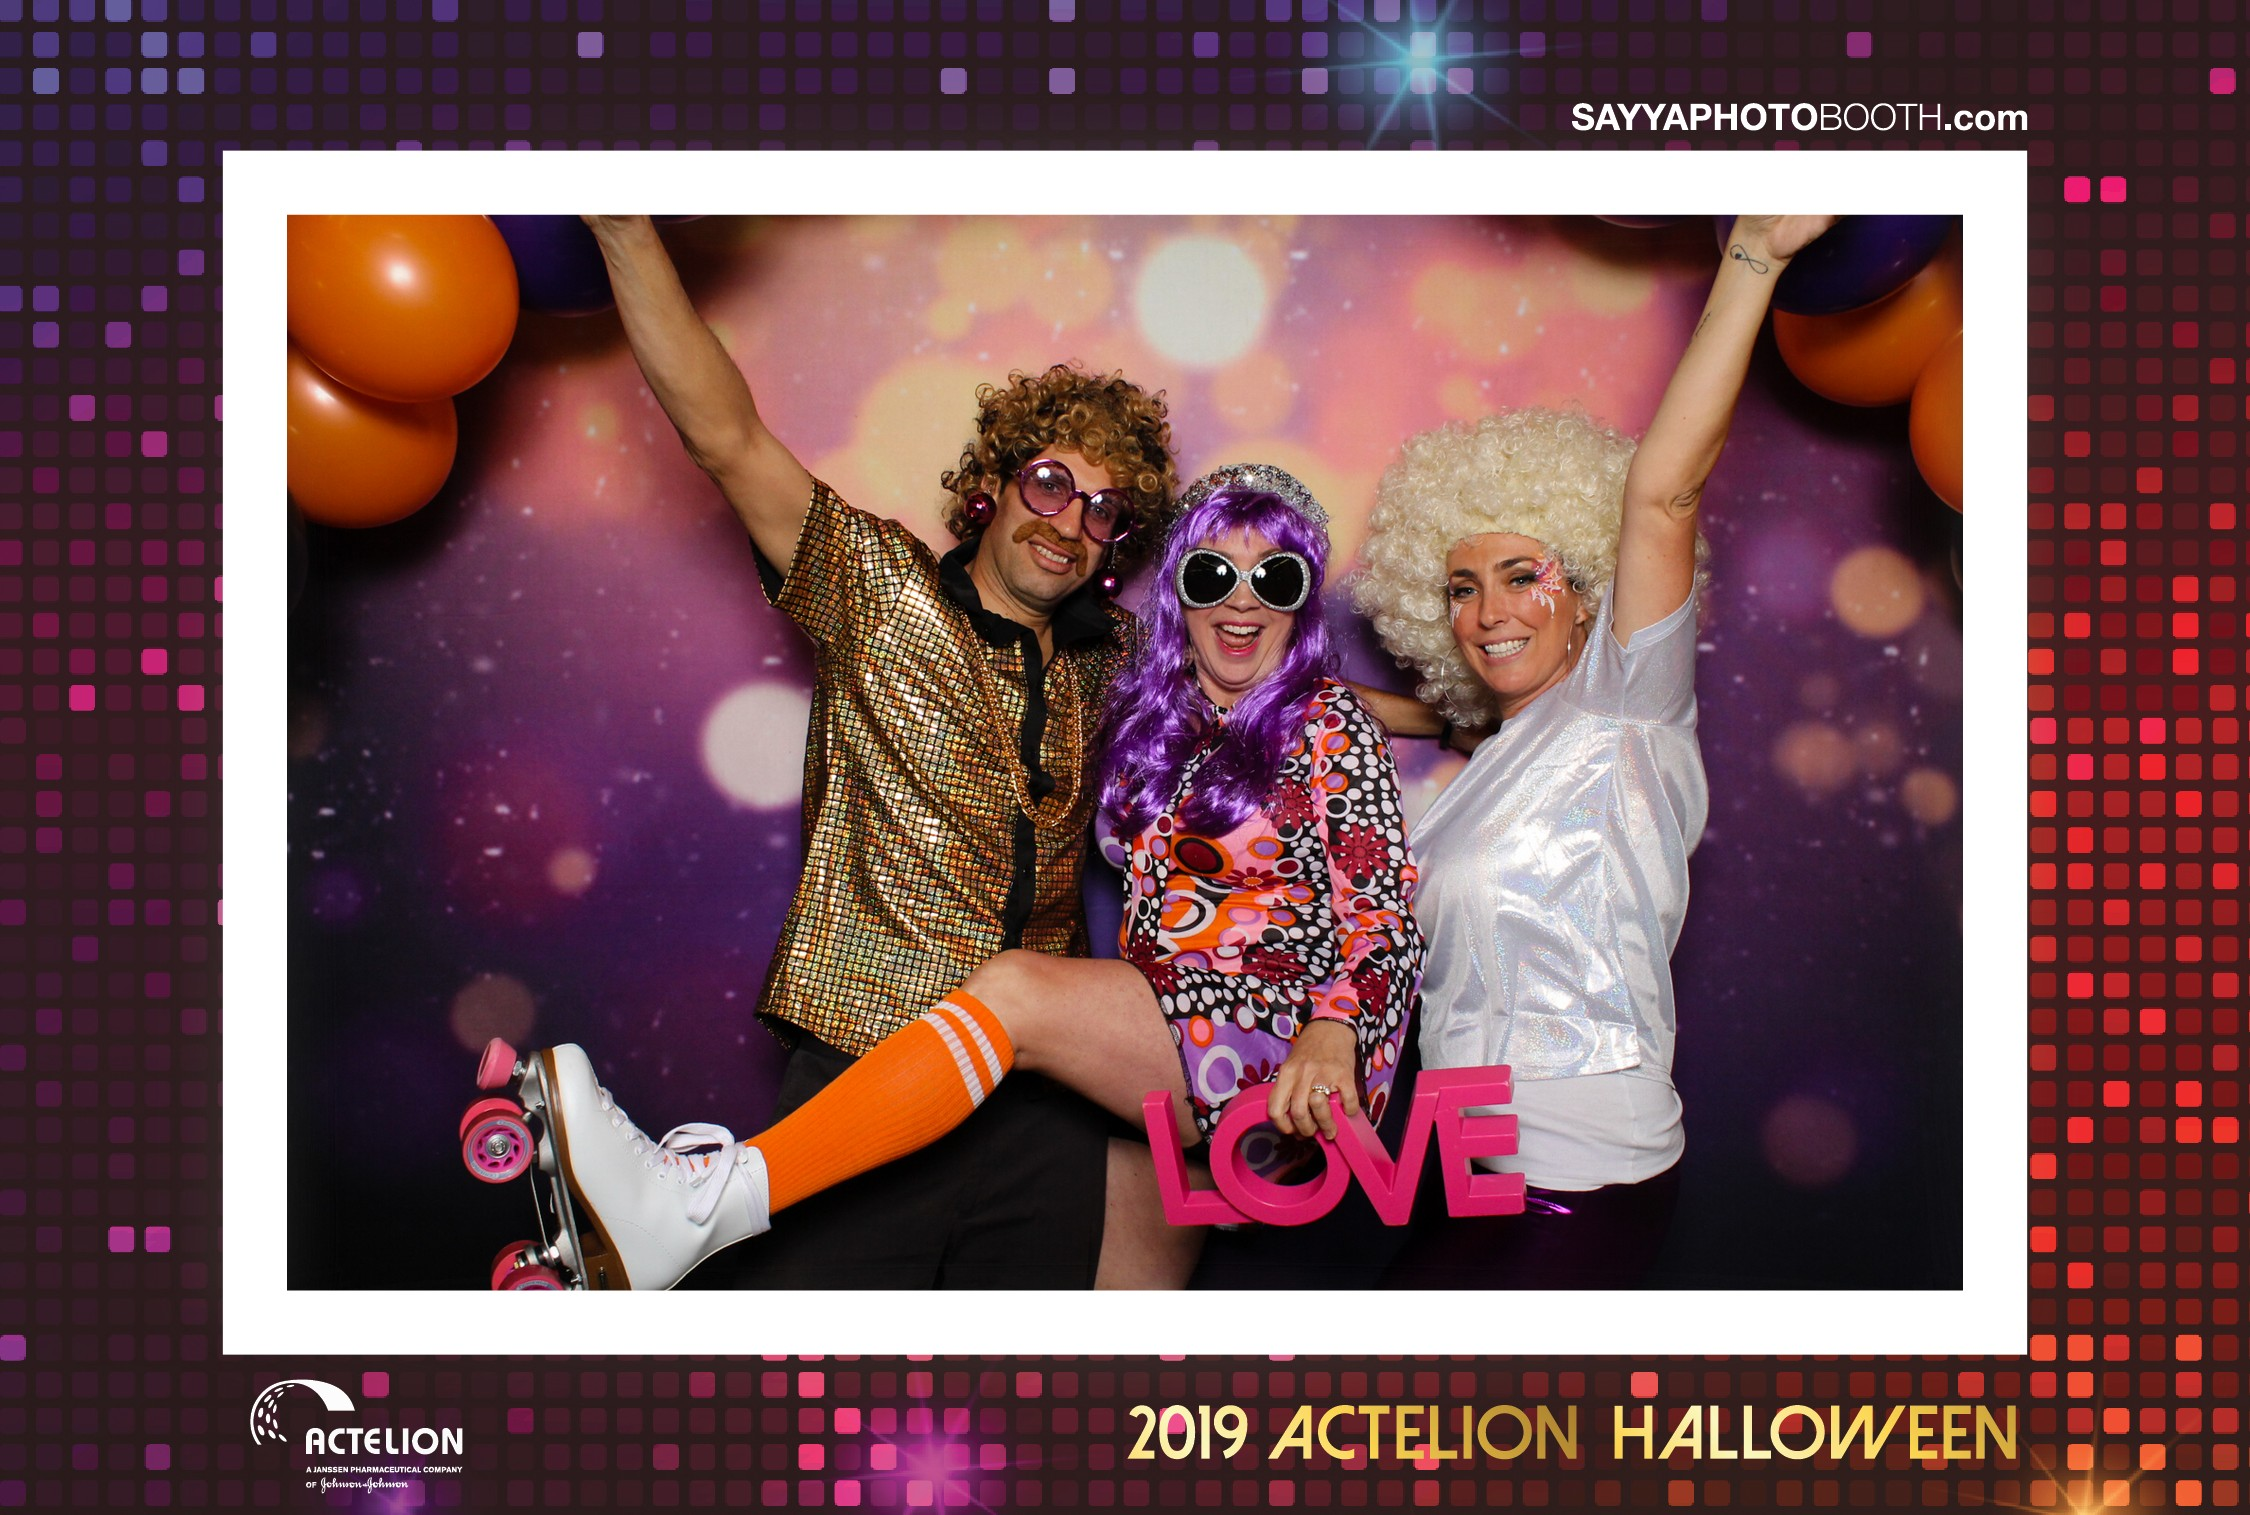 Actelion's Halloween Party